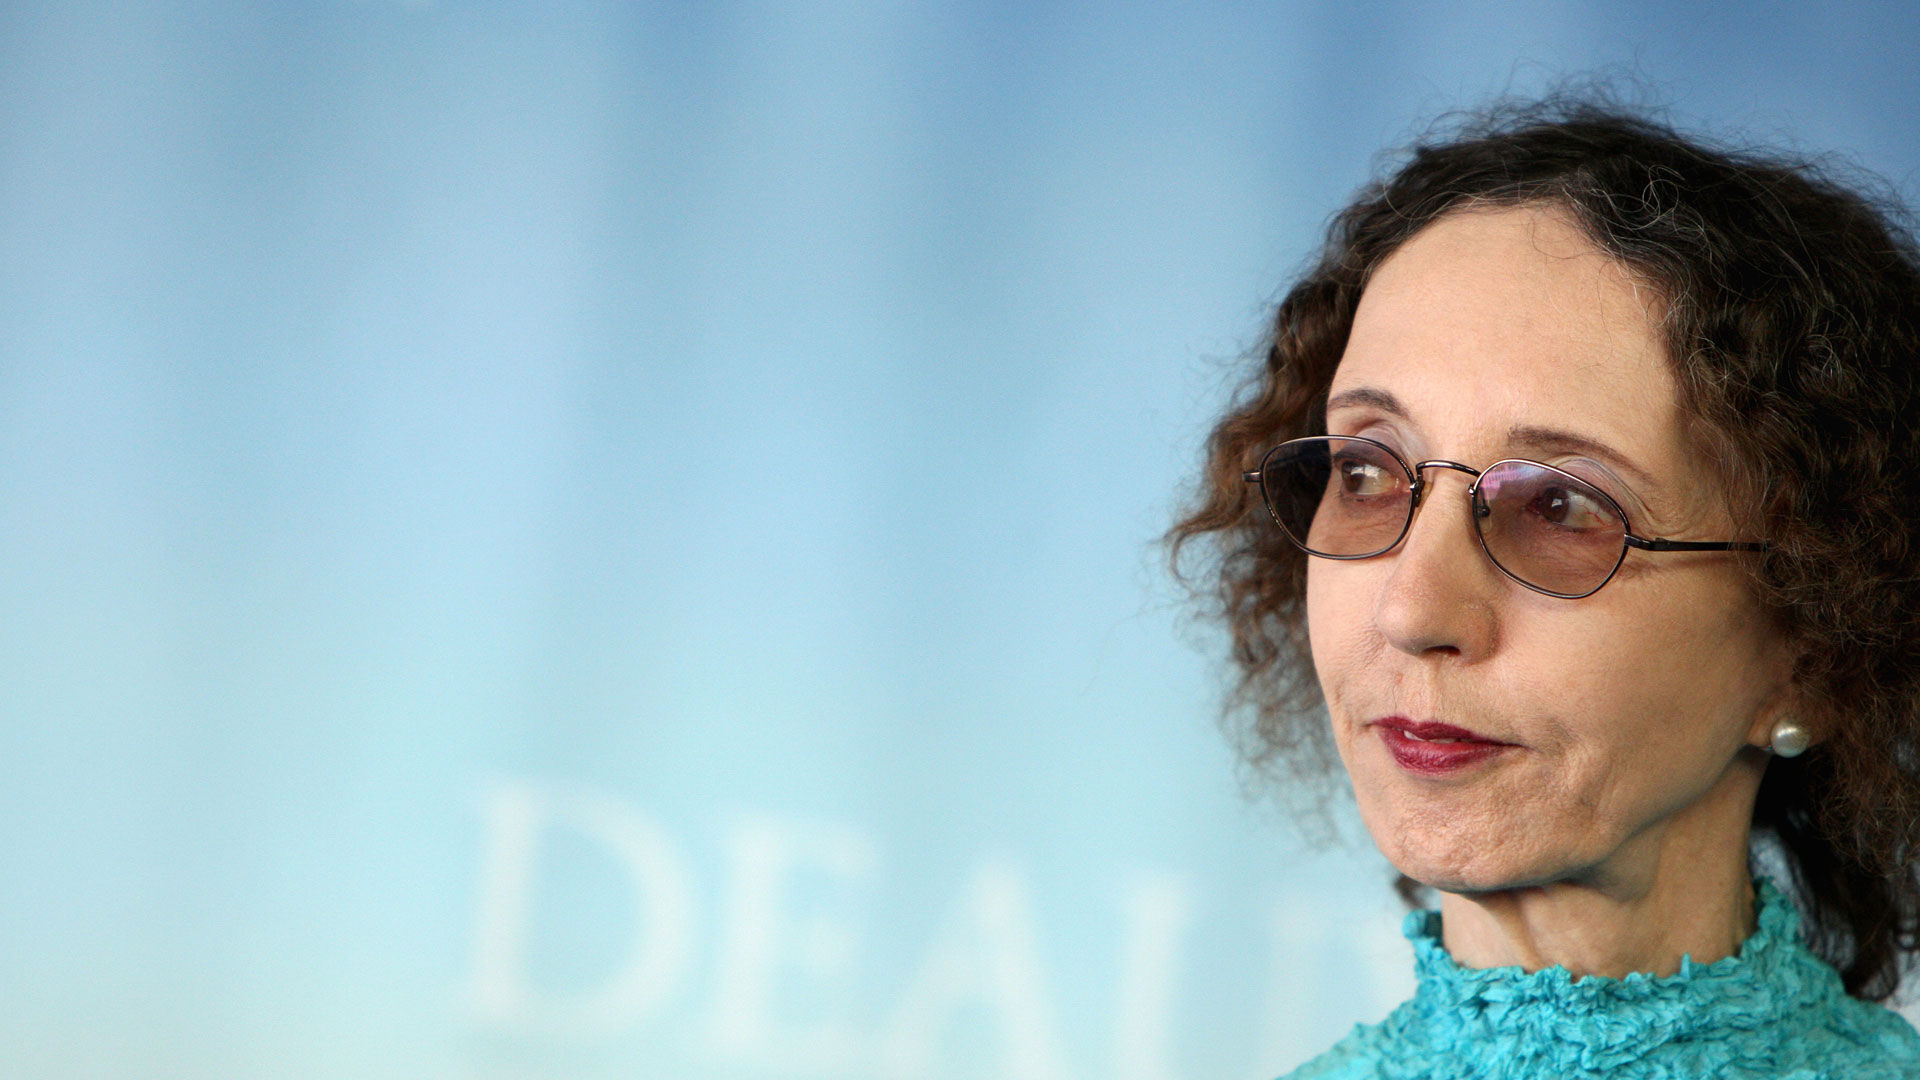 carol oates essays @example essays joyce carol oates 5 pages 1298 words joyce carol oates' short narrative entitled, life after high school depicted an uncomfortable friendship between two people finding.